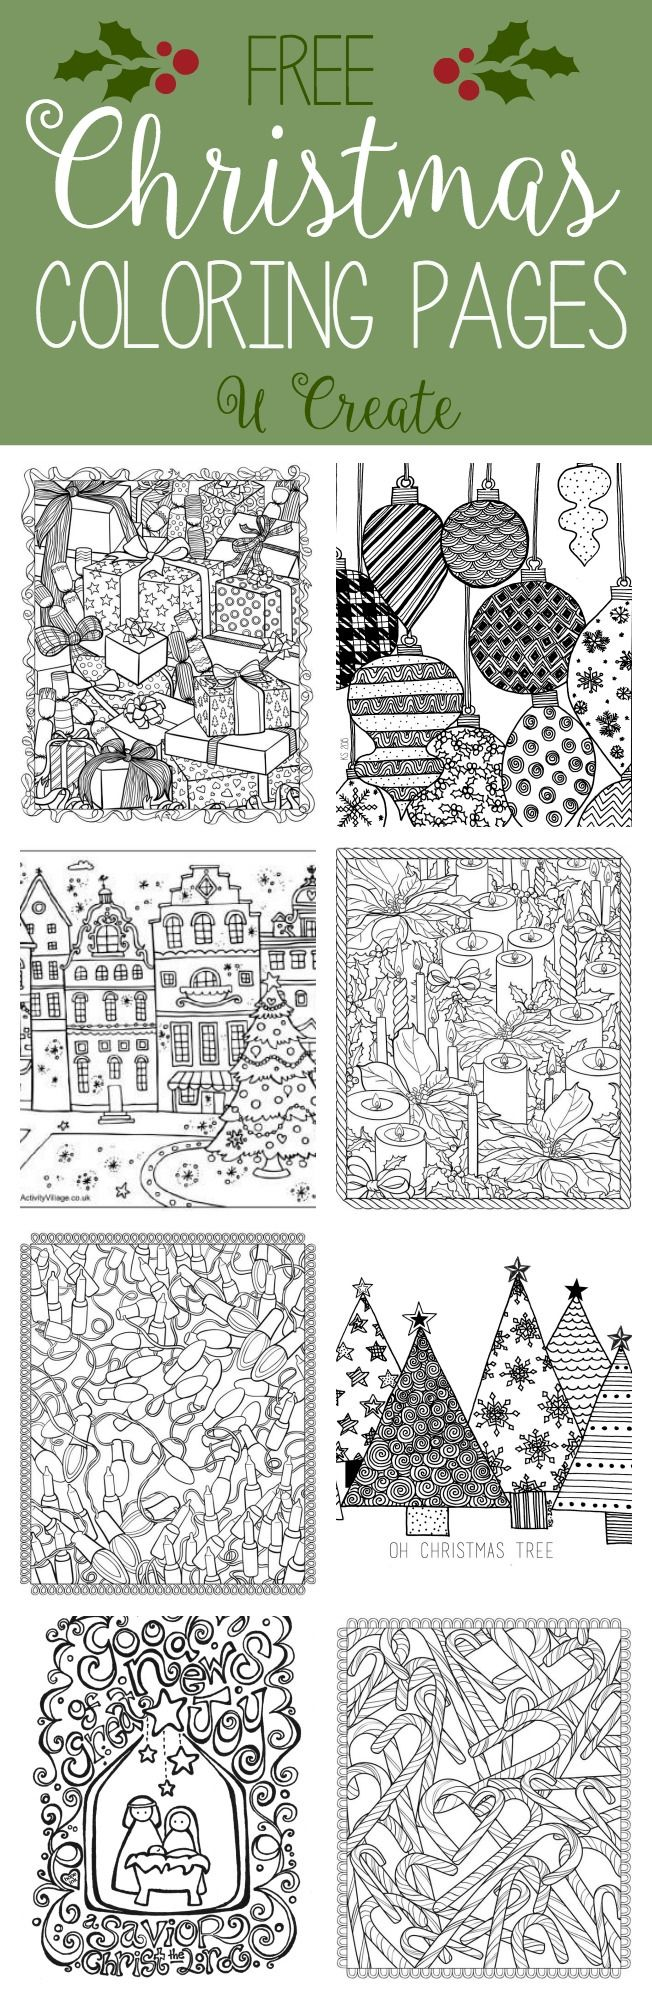 Christmas coloring pages for kindergarten students - Free Christmas Adult Coloring Pages